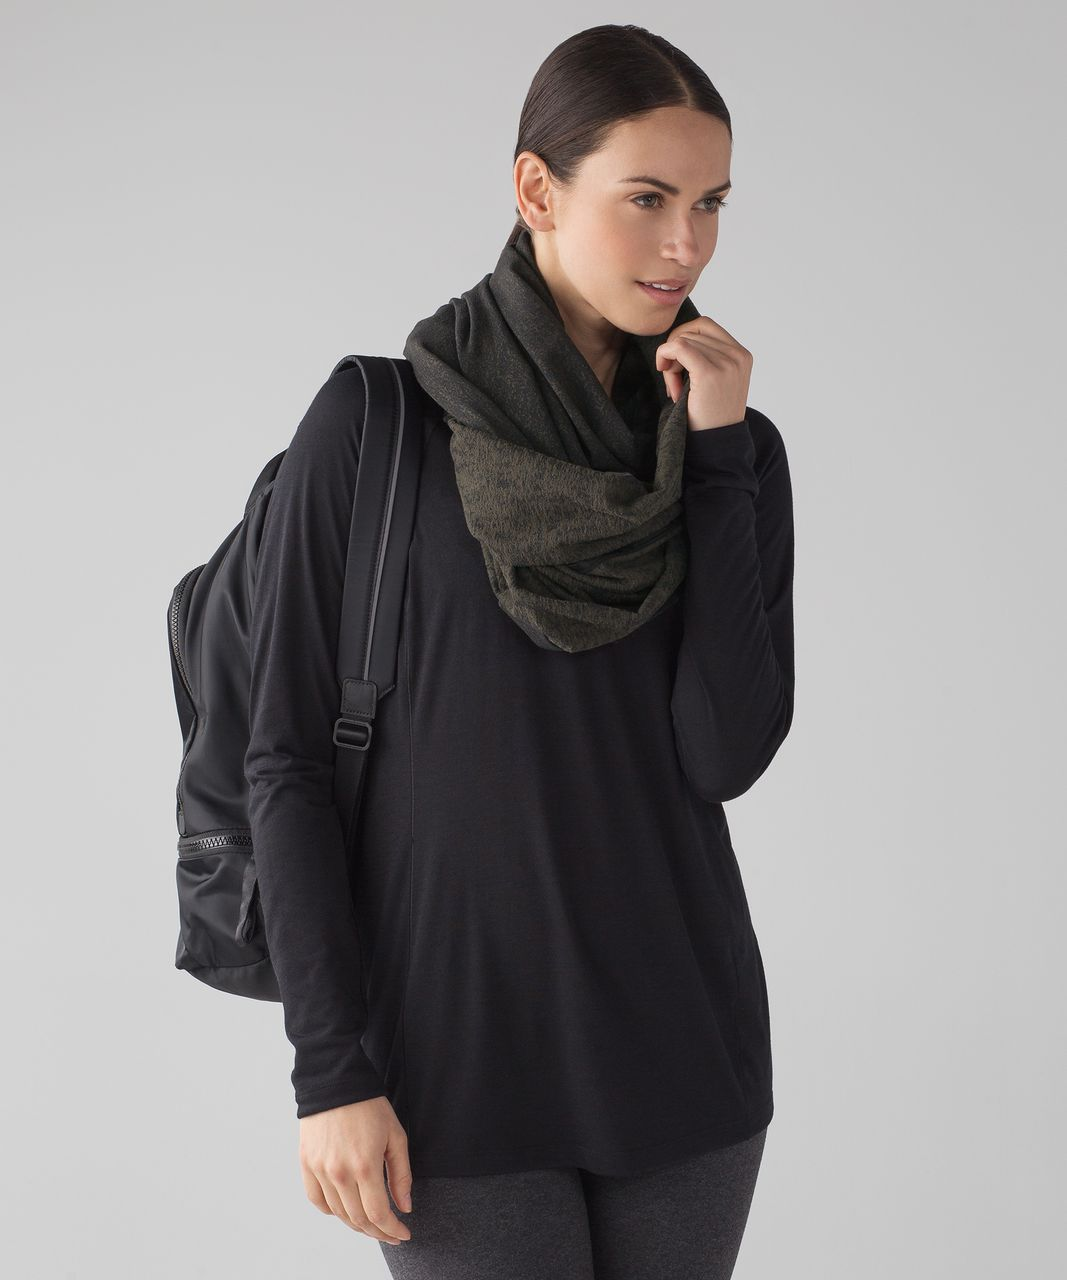 Lululemon Vinyasa Wrap - Running Luon Suited Jacquard Black Dark Olive